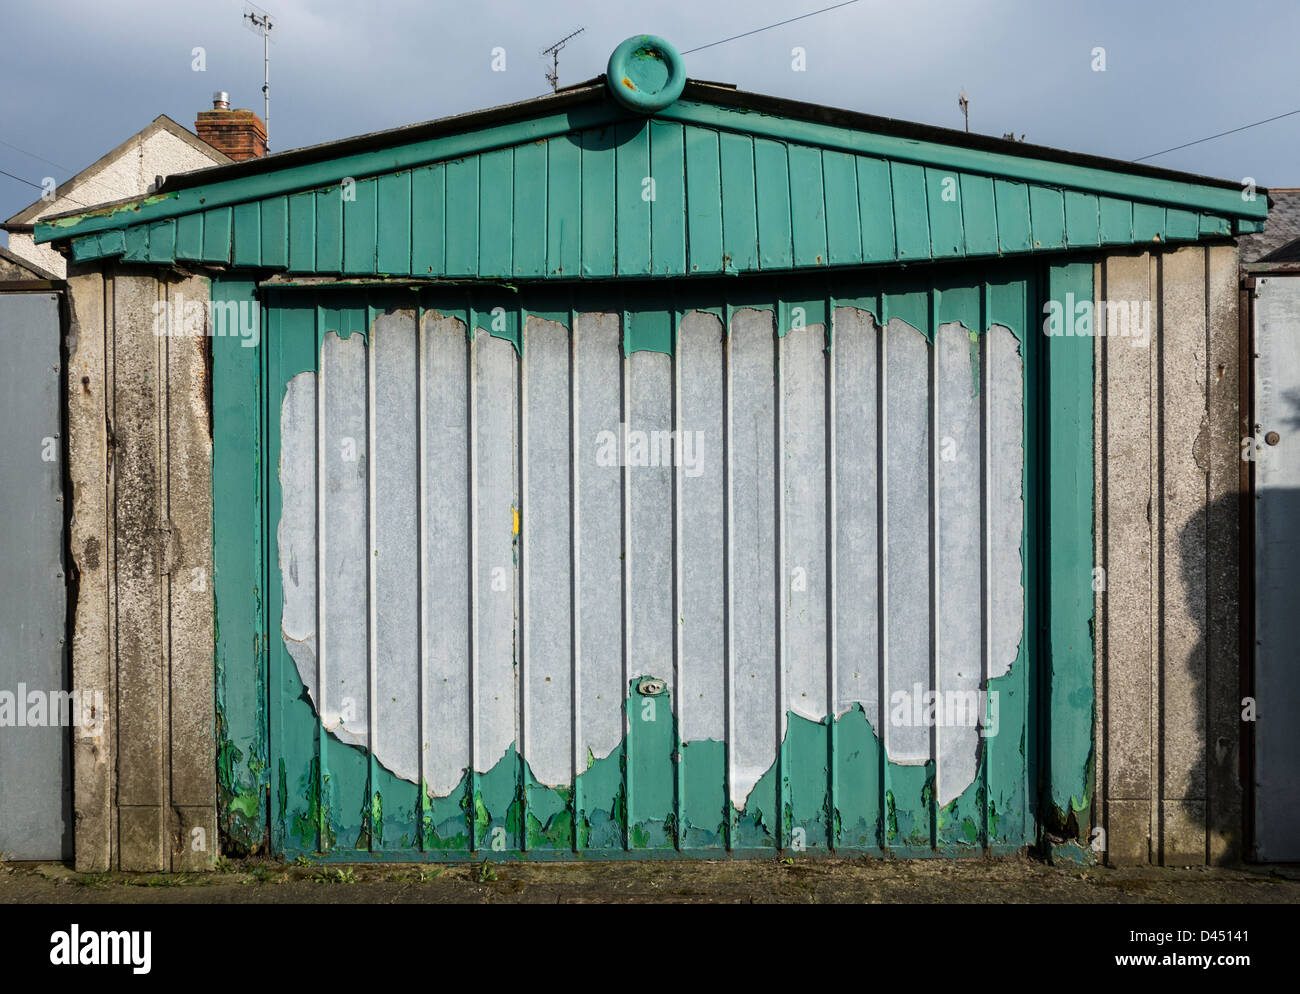 A sagging and dilapidated garage door with peeling green paint - Stock Image